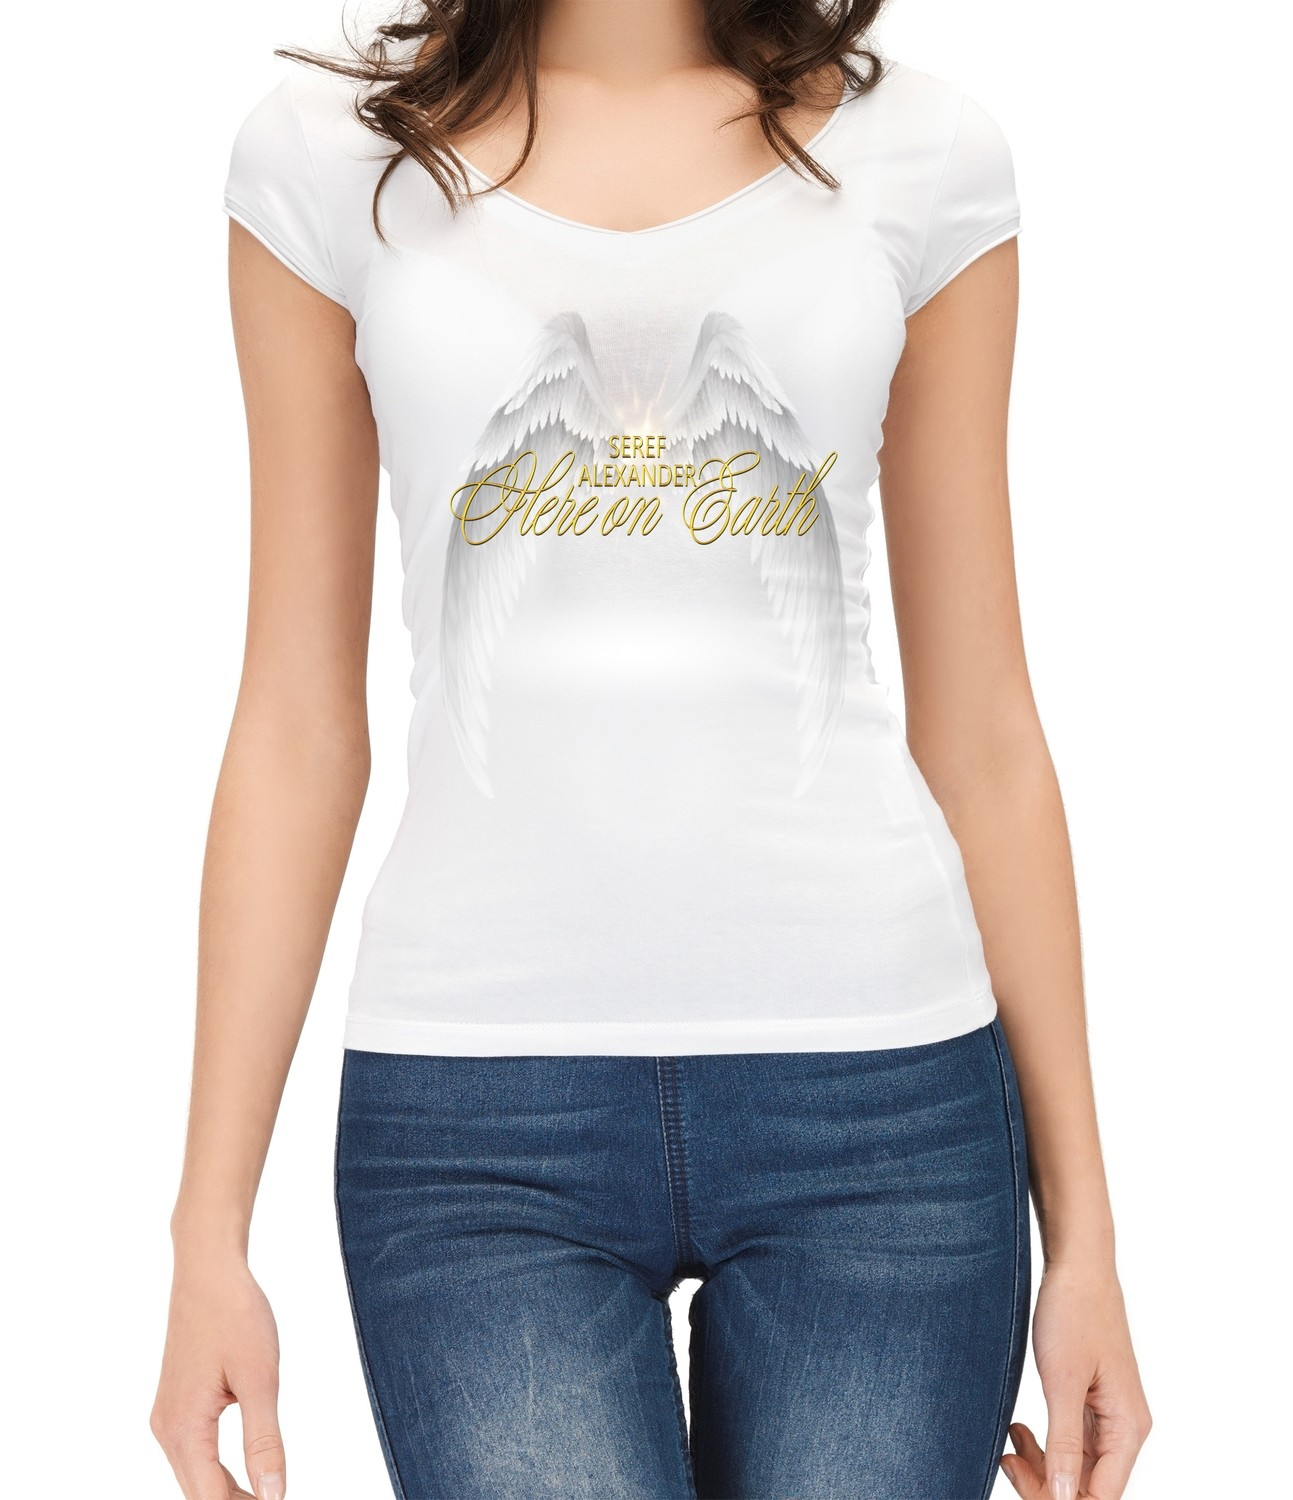 Guardian Angel - T-Shirt (not available at the moment)